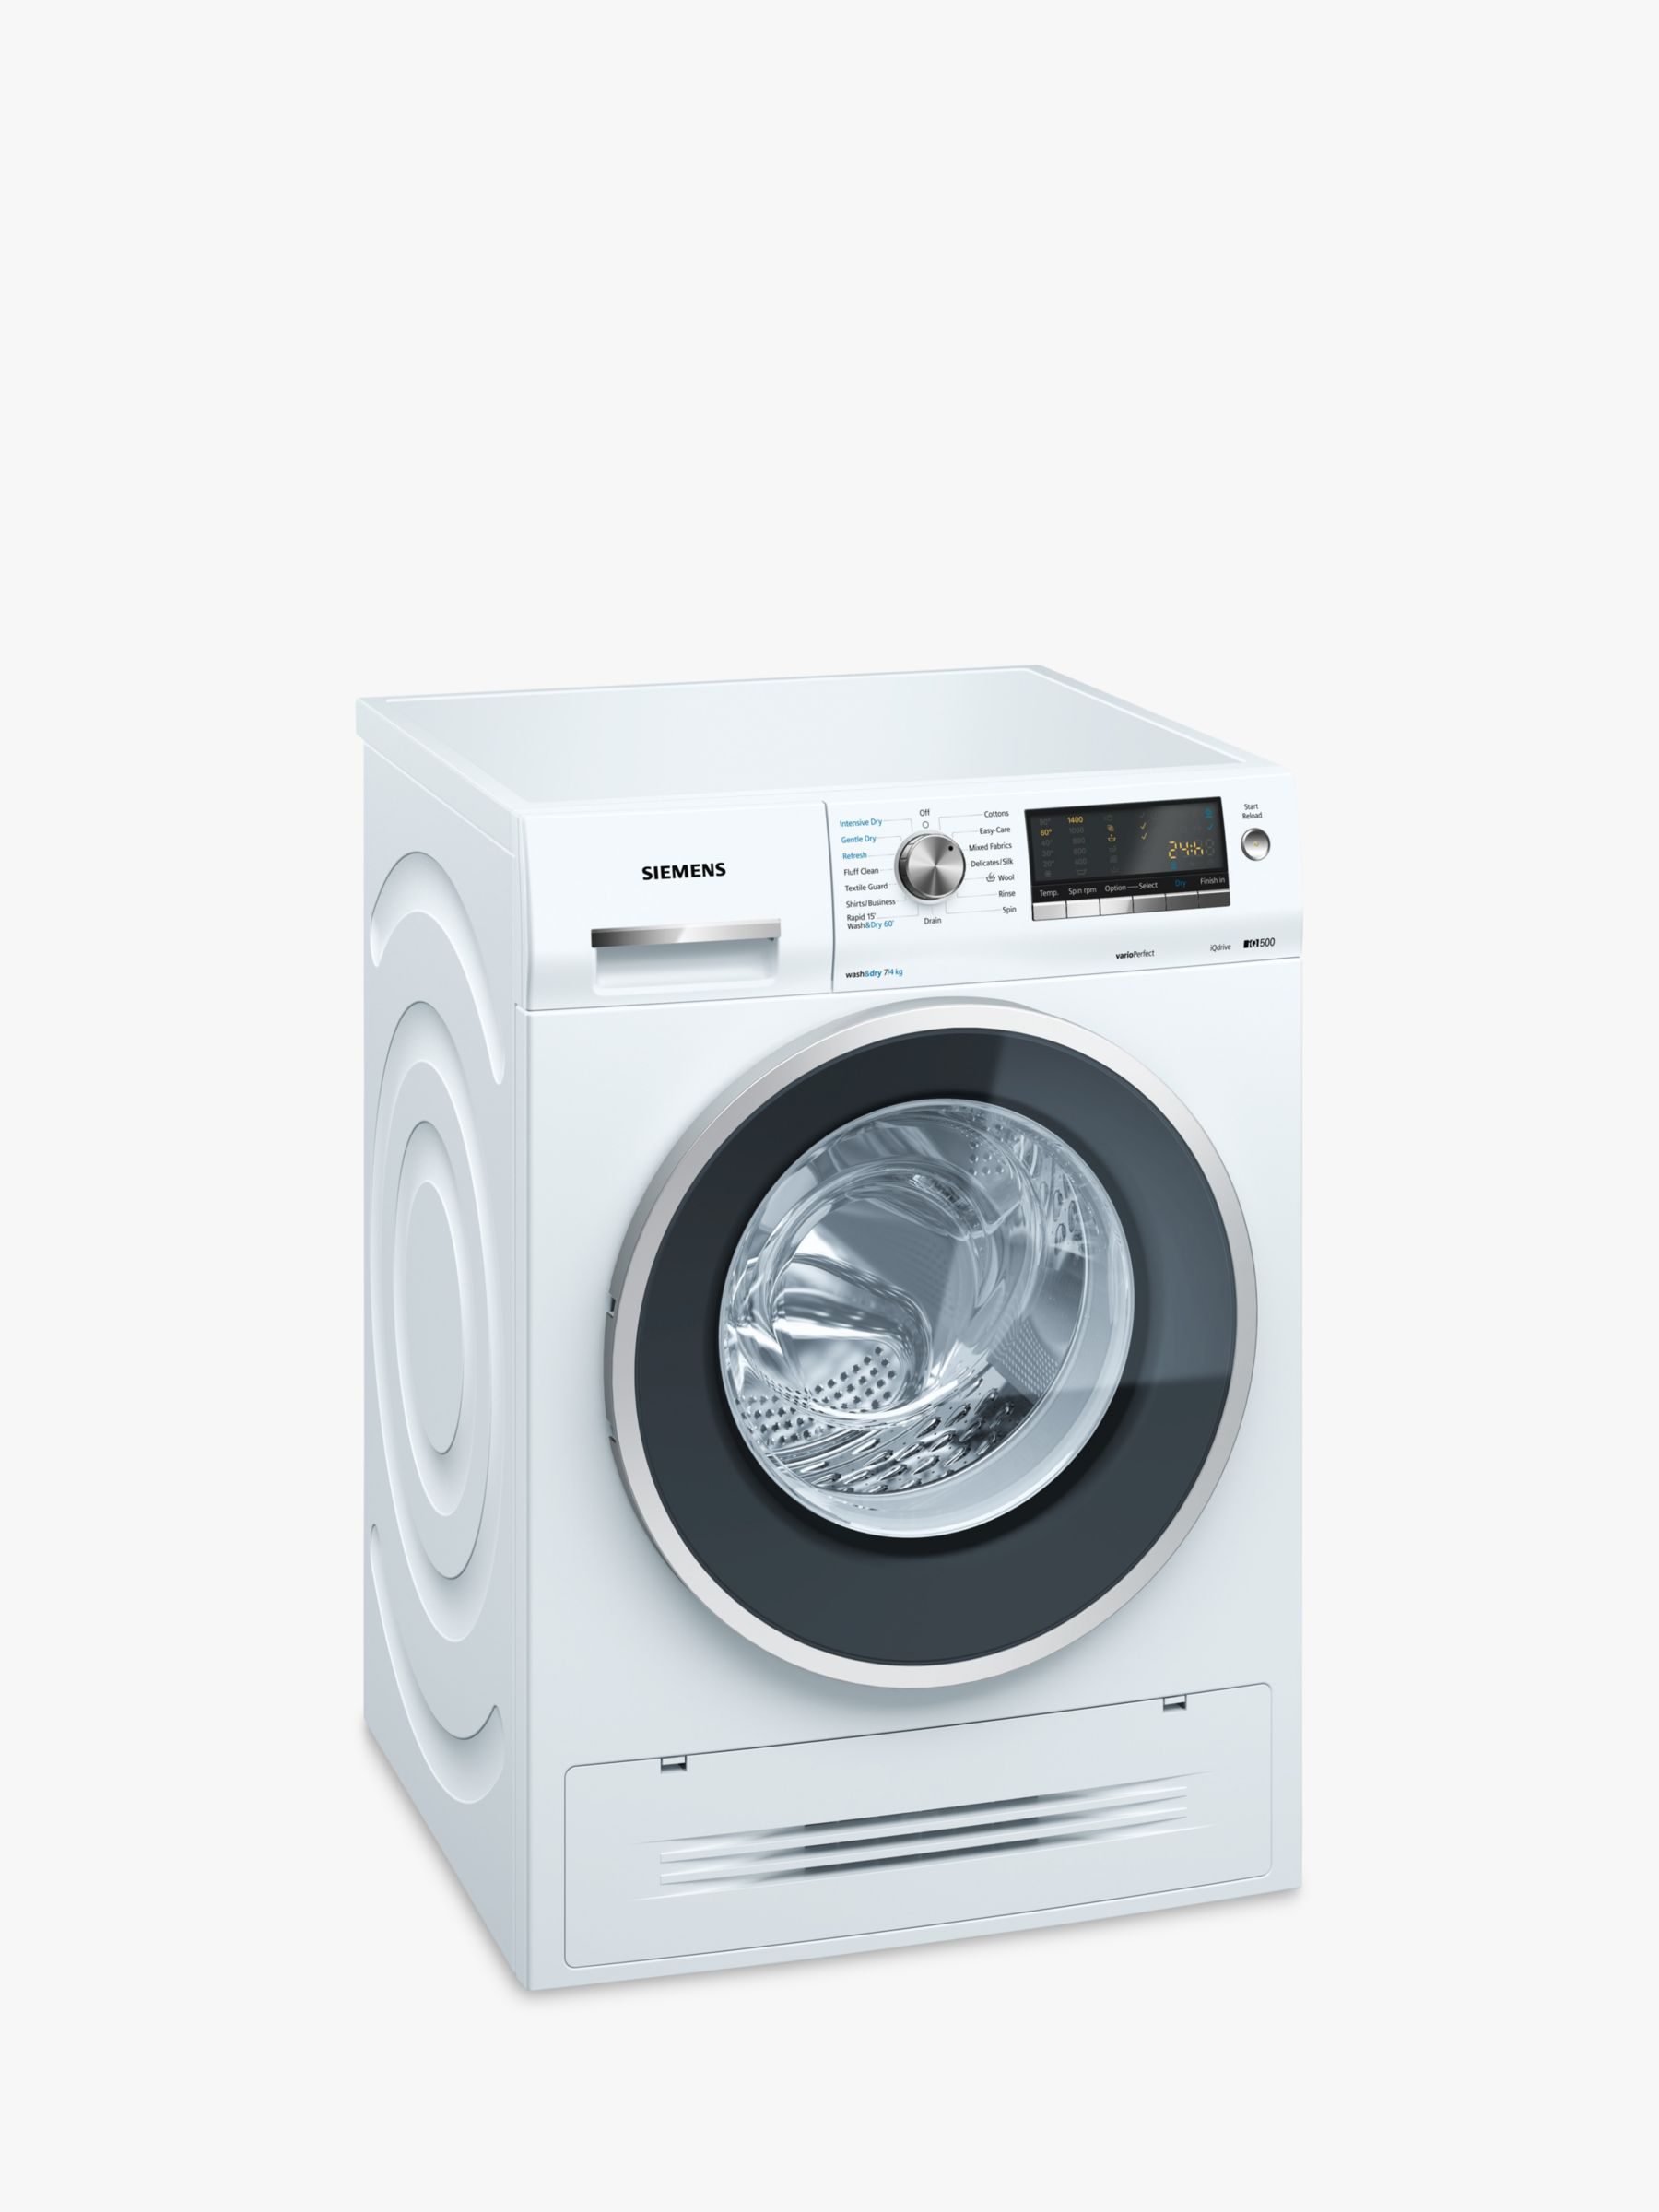 Siemens Siemens WD14H422GB Washer Dryer, 7kgWash/4kg Dry Load, A Energy Rating, 1400rpm Spin, White